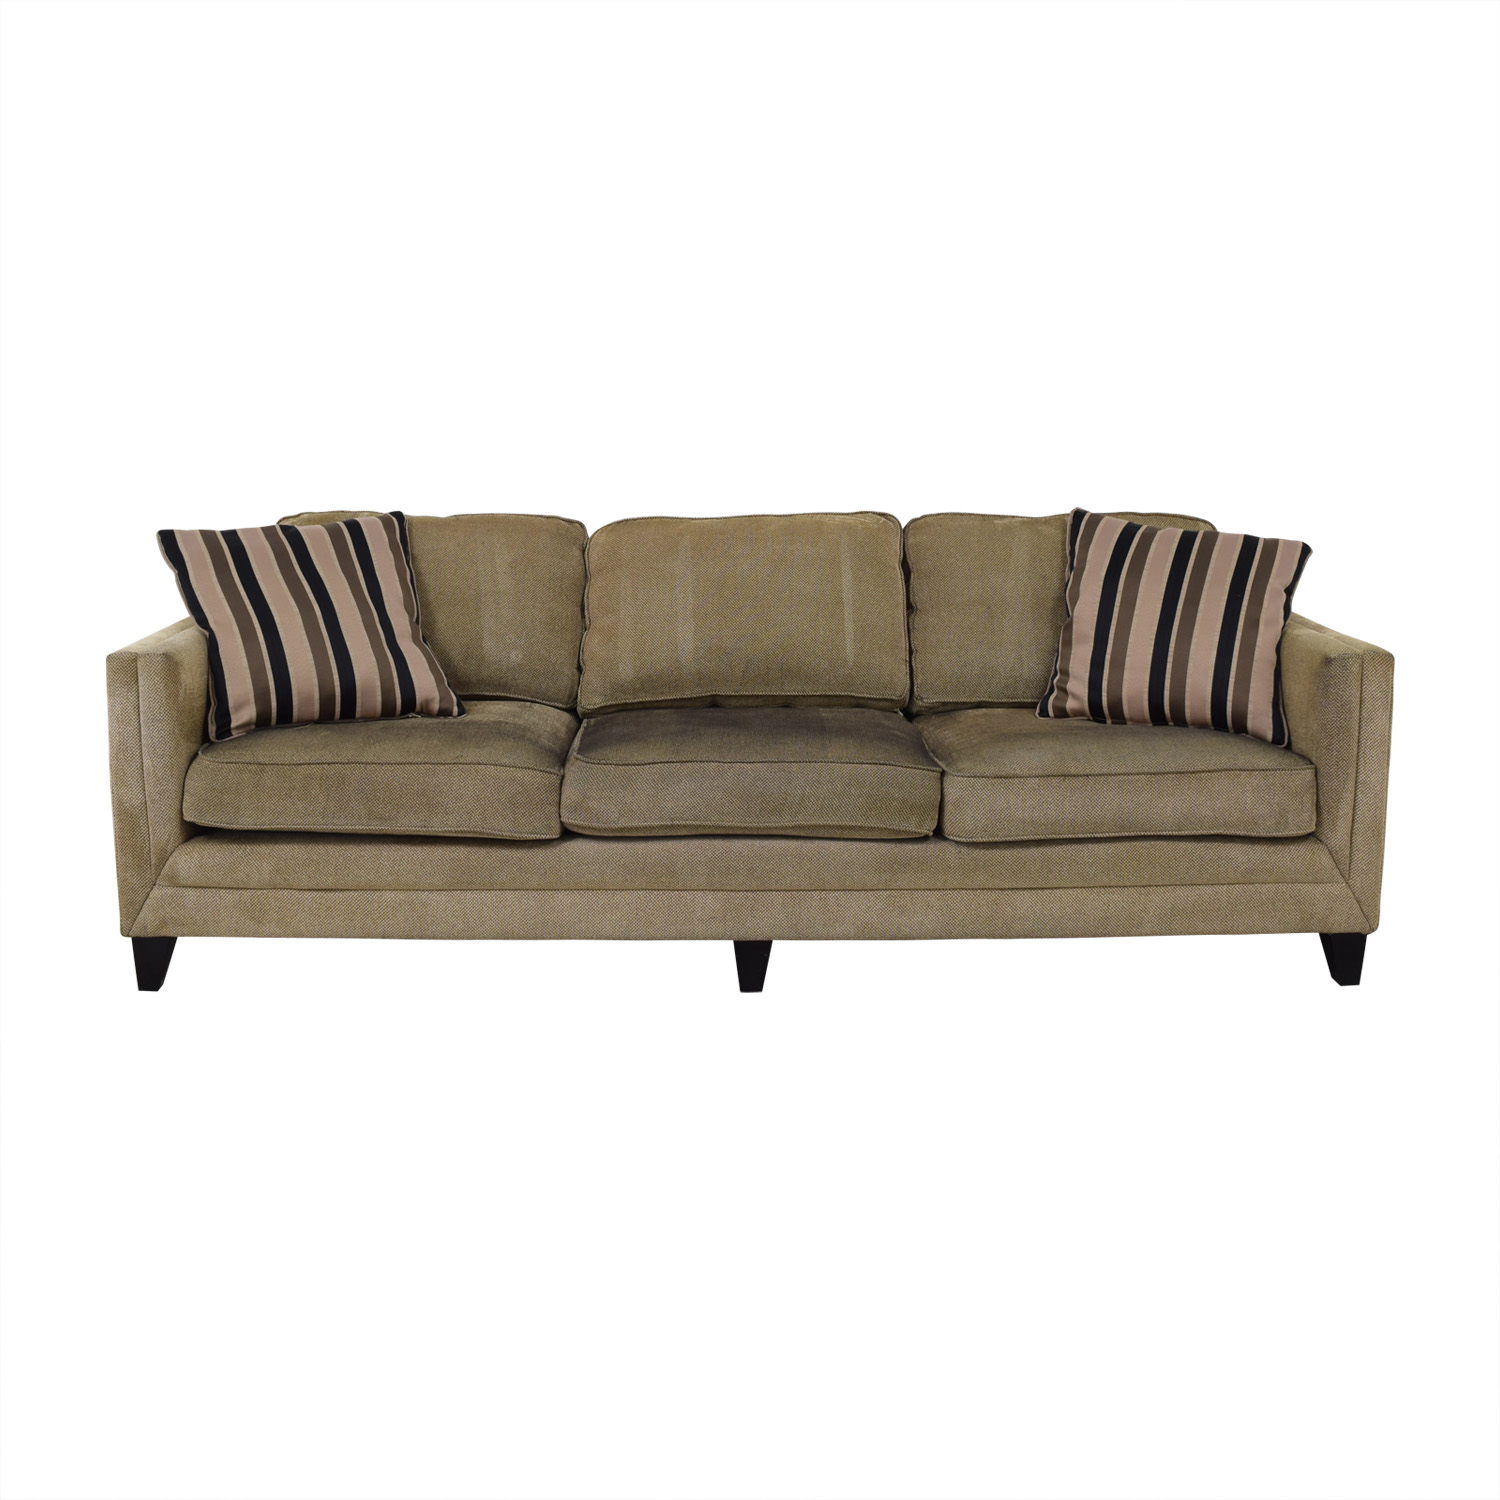 Sofa Modern 77 Off Brown Three Seater Modern Sofa Sofas